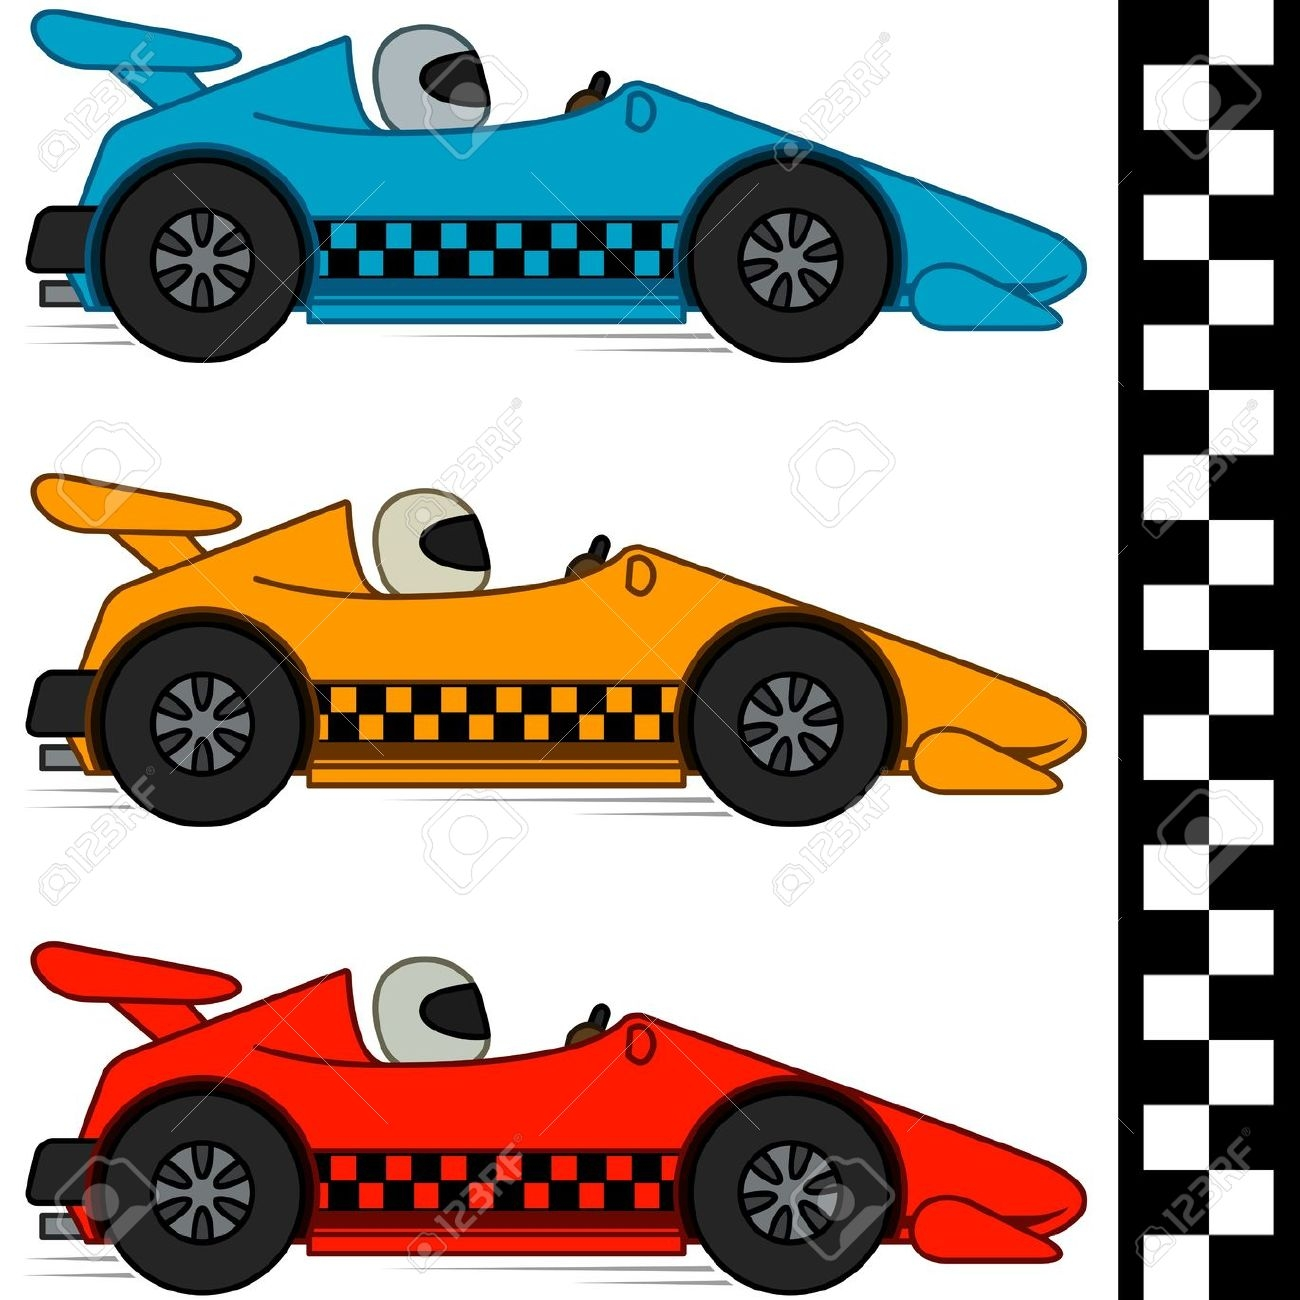 Stock Car Racing Clipart